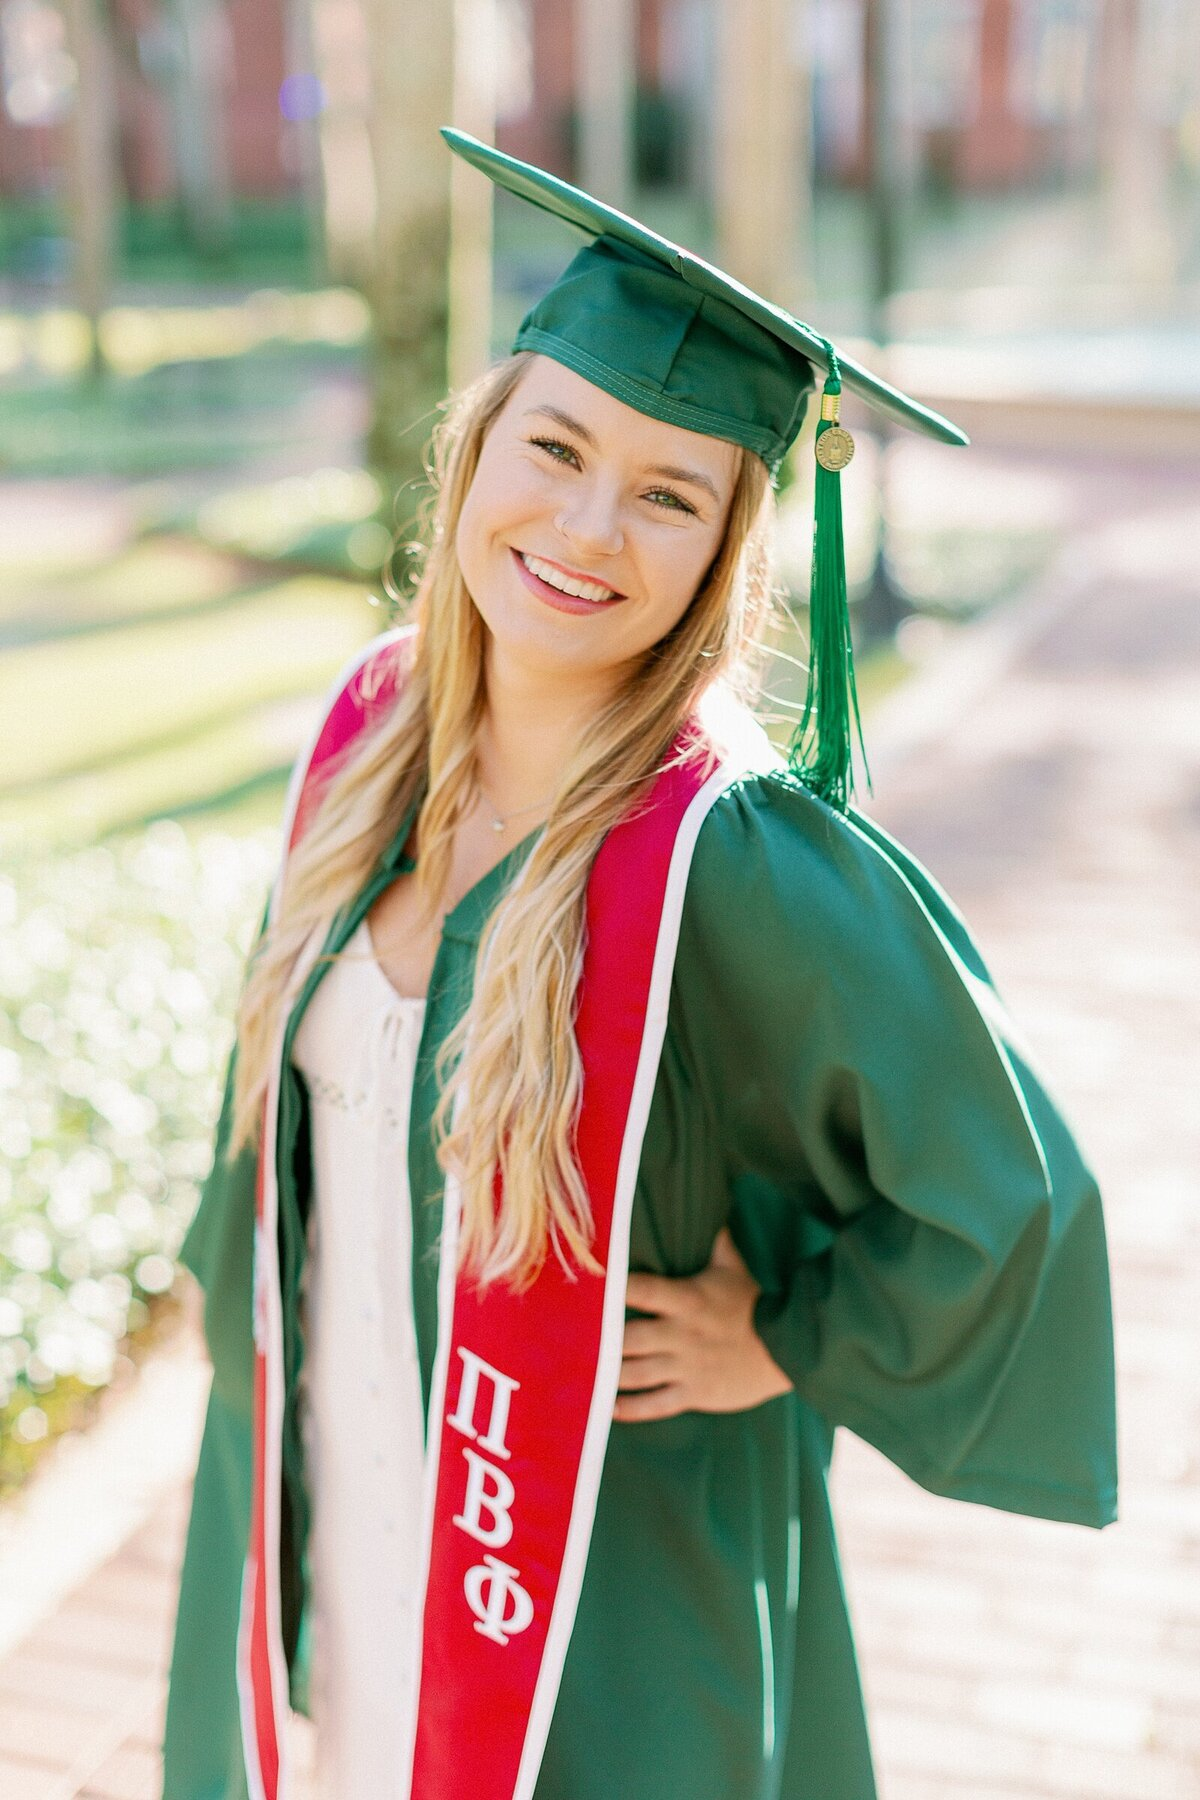 IPhillips Stetson College DeLand Florida Senior Portraits Photographer Casie Marie Photography-24